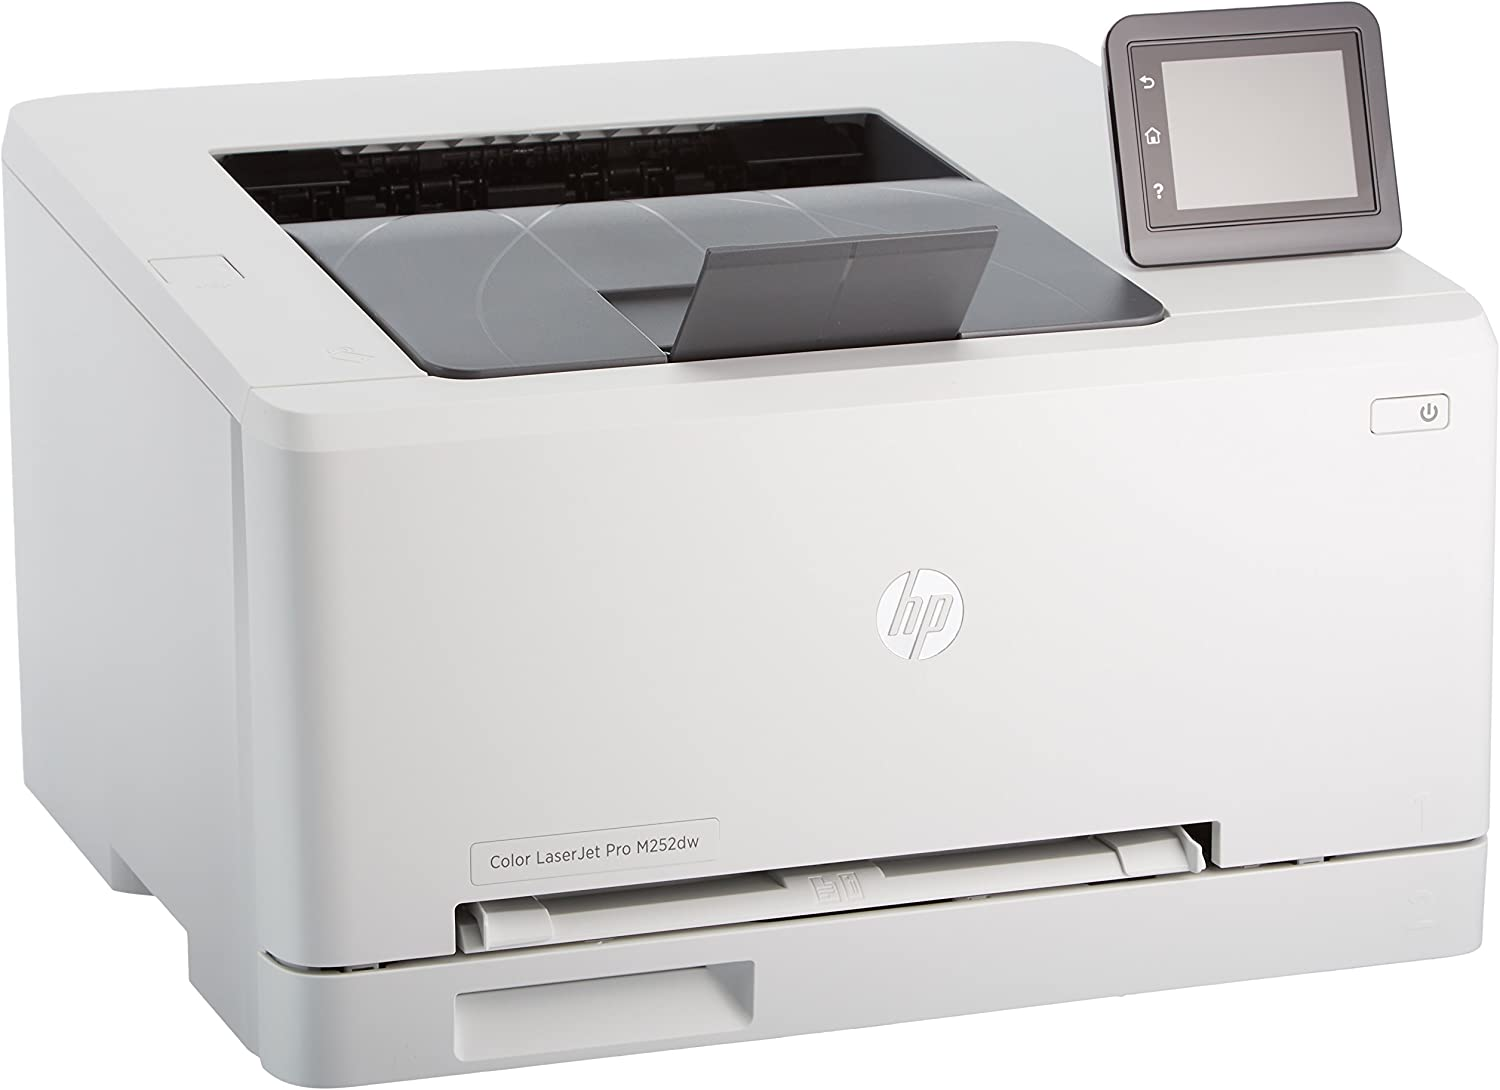 HP Laserjet Pro M252dw Wireless Color Printer, Amazon Dash Replenishment Ready (B4A22A)